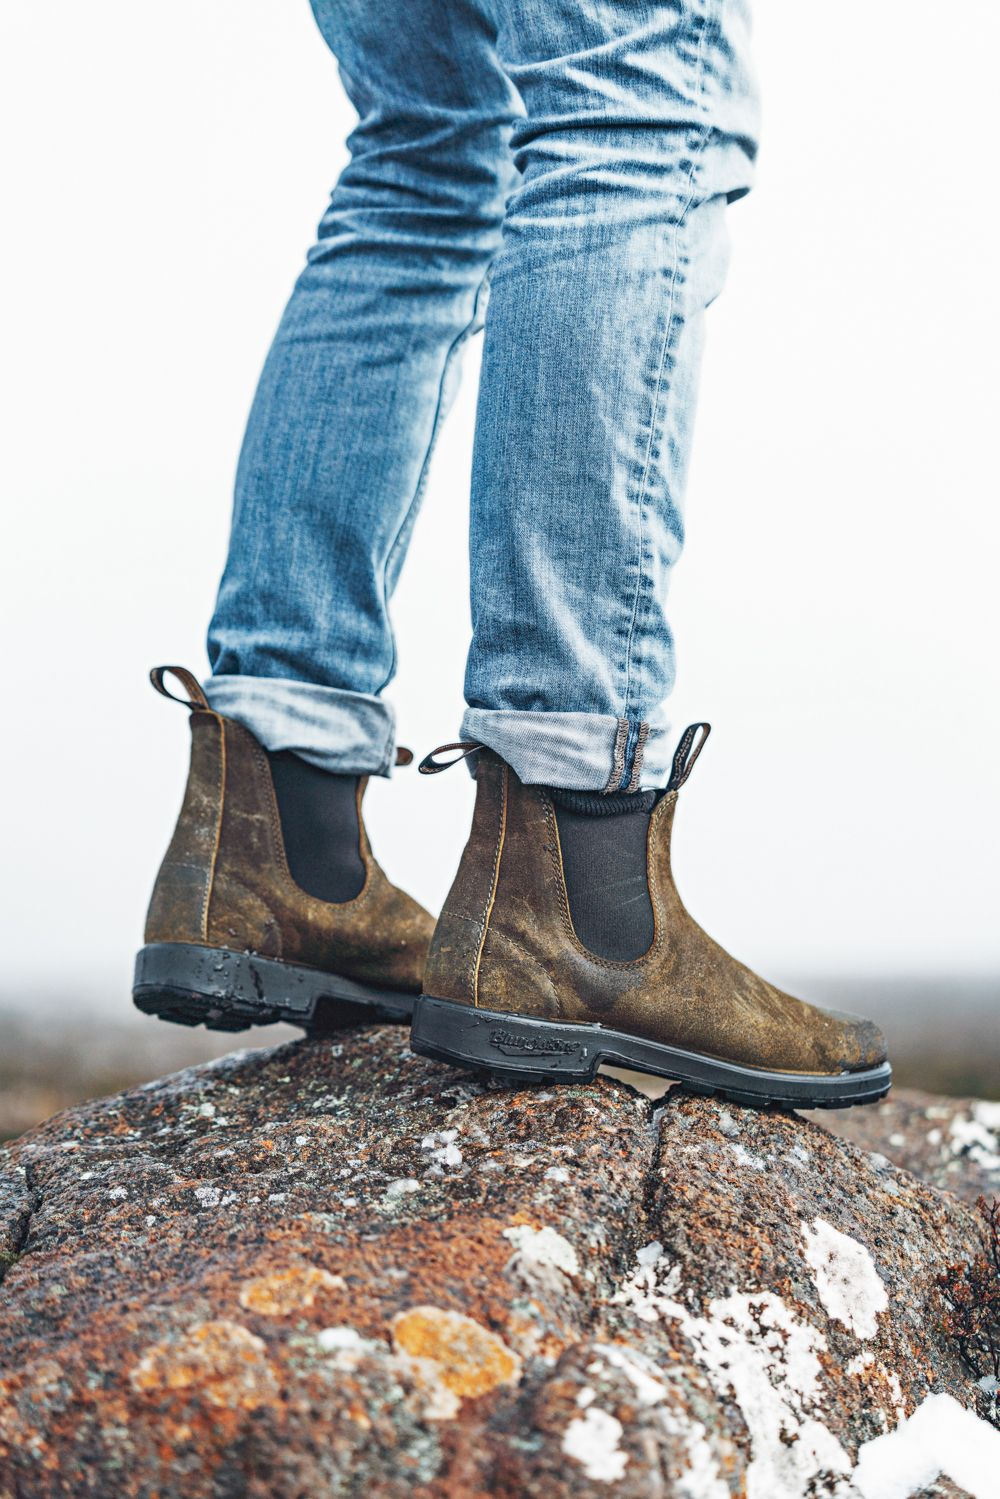 Chelsea boots, Blundstone boots